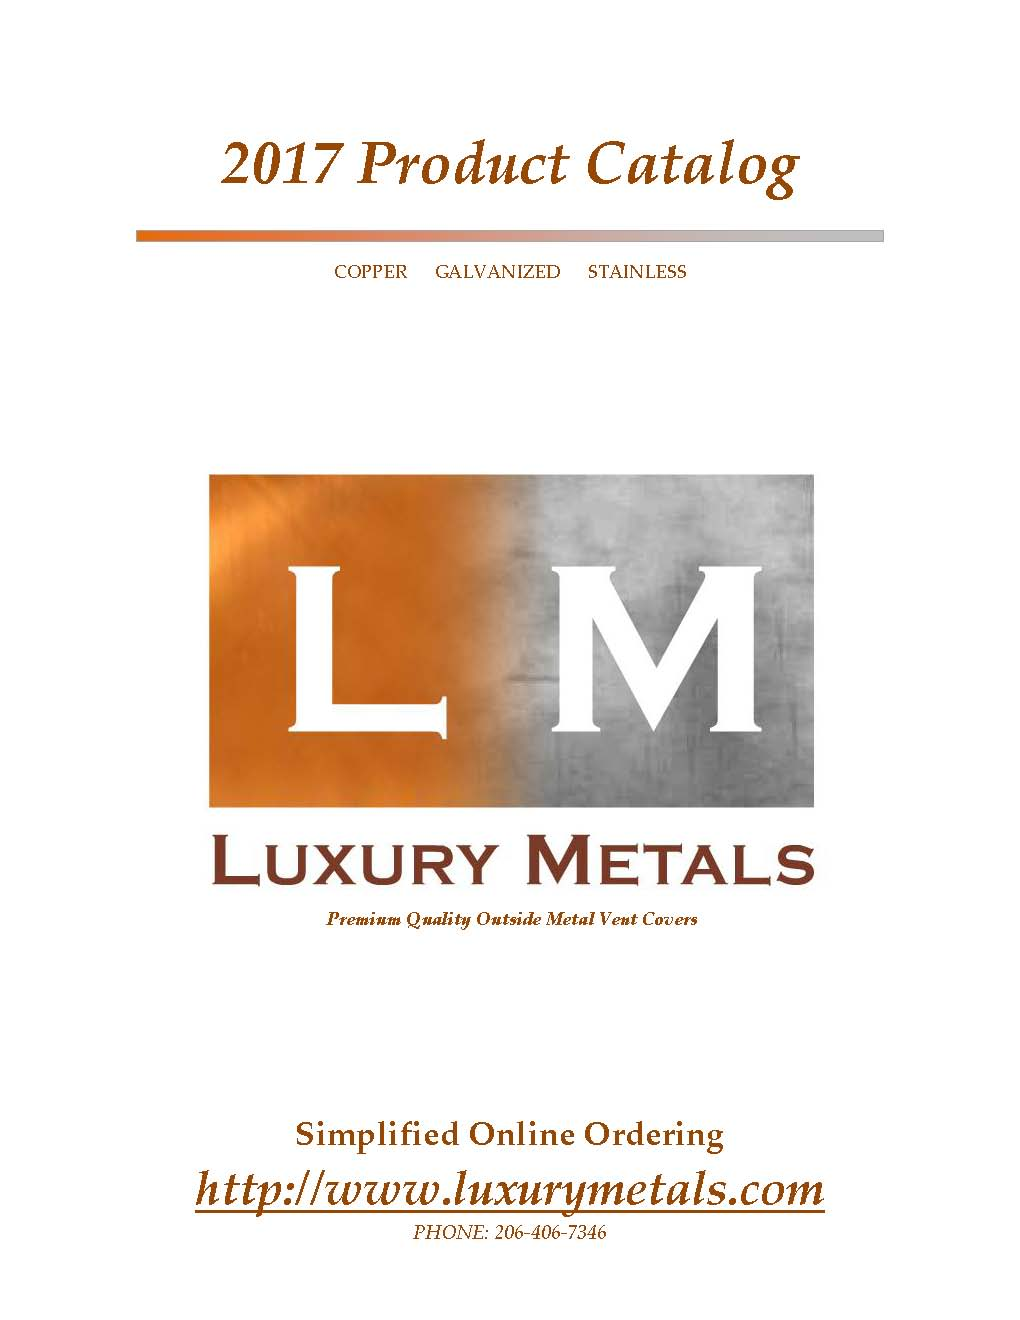 Luxury Metals Product Catalog